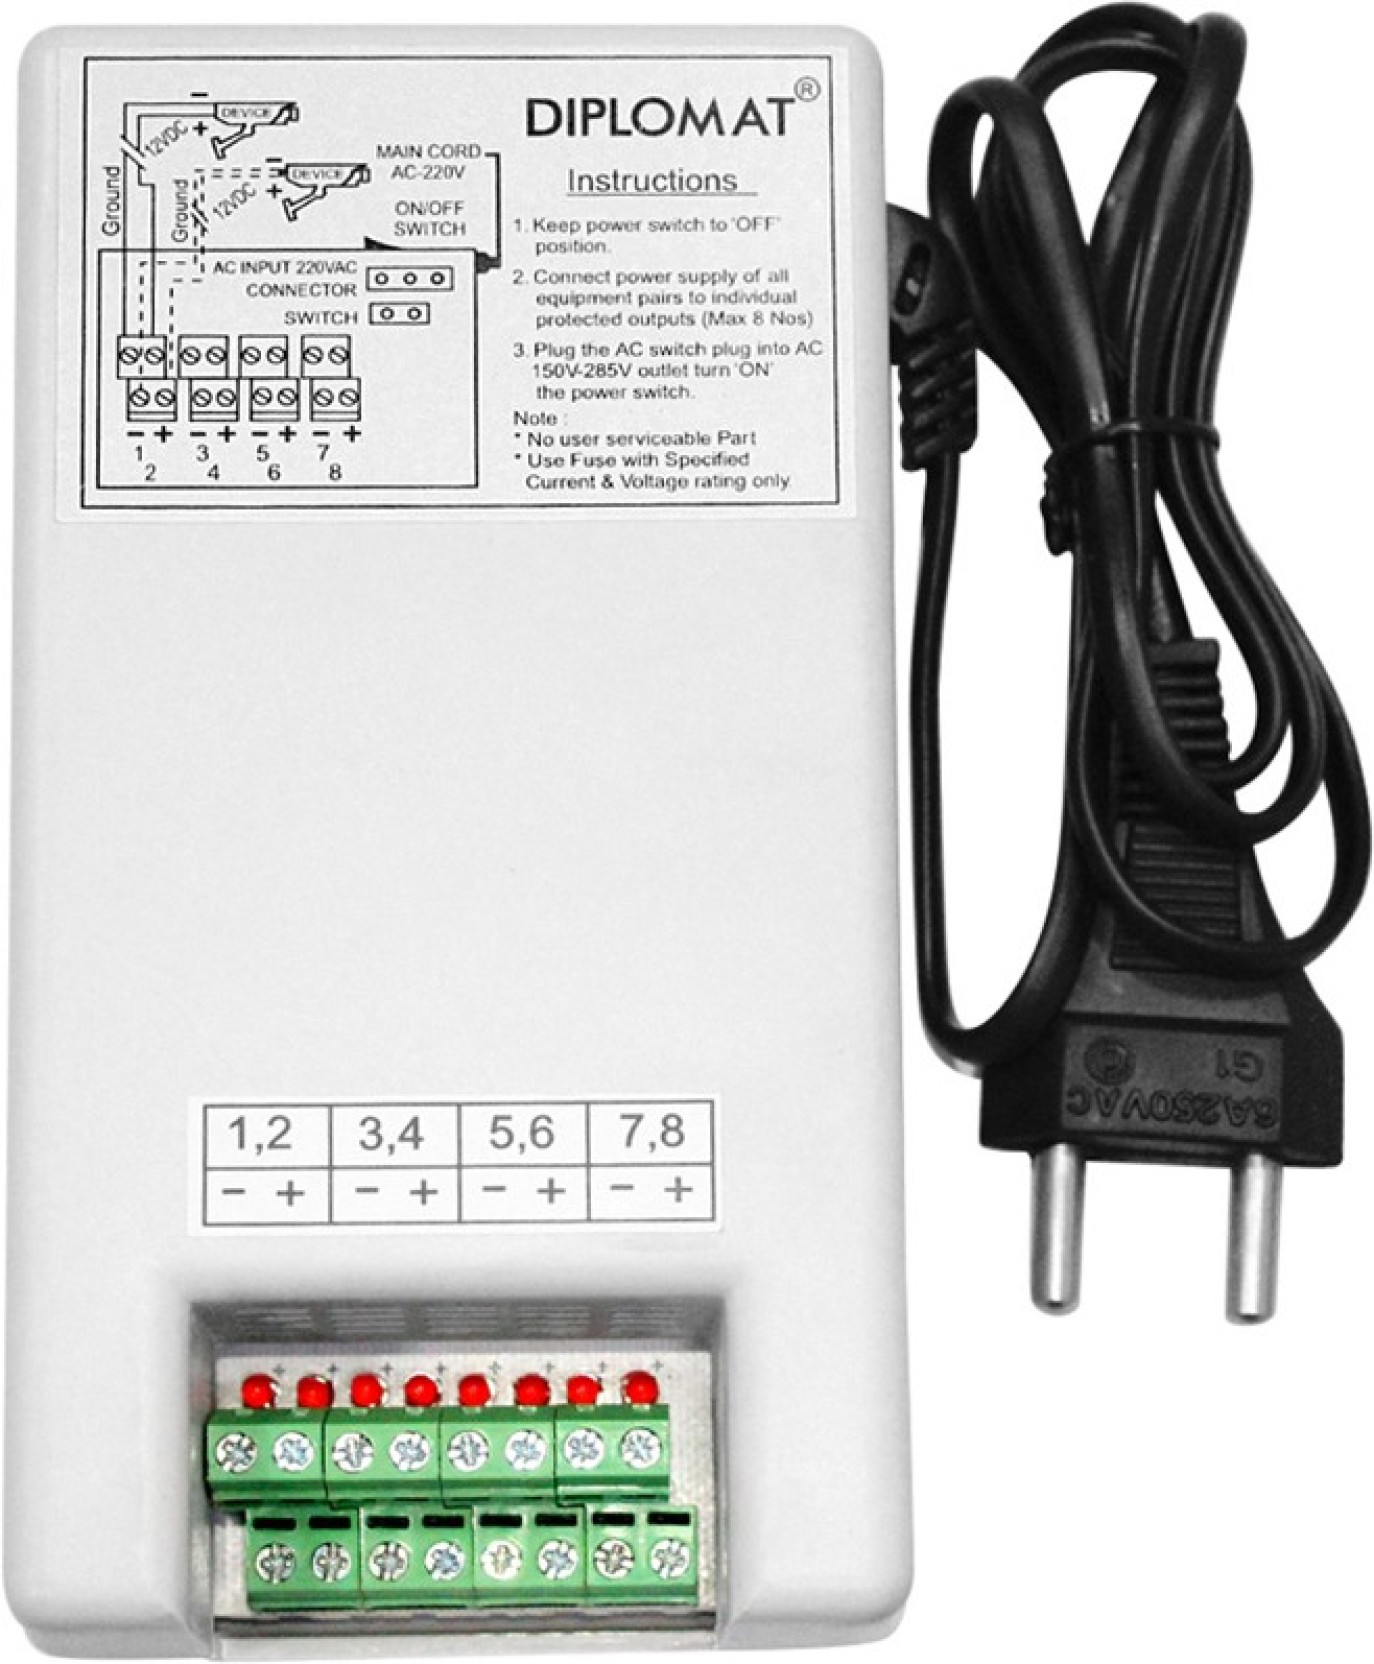 Elove 5 Amp 12vdc 8 Channel Power Adapter Supply Smps For Cctv 12v Dc Wiring Supplies Add To Cart